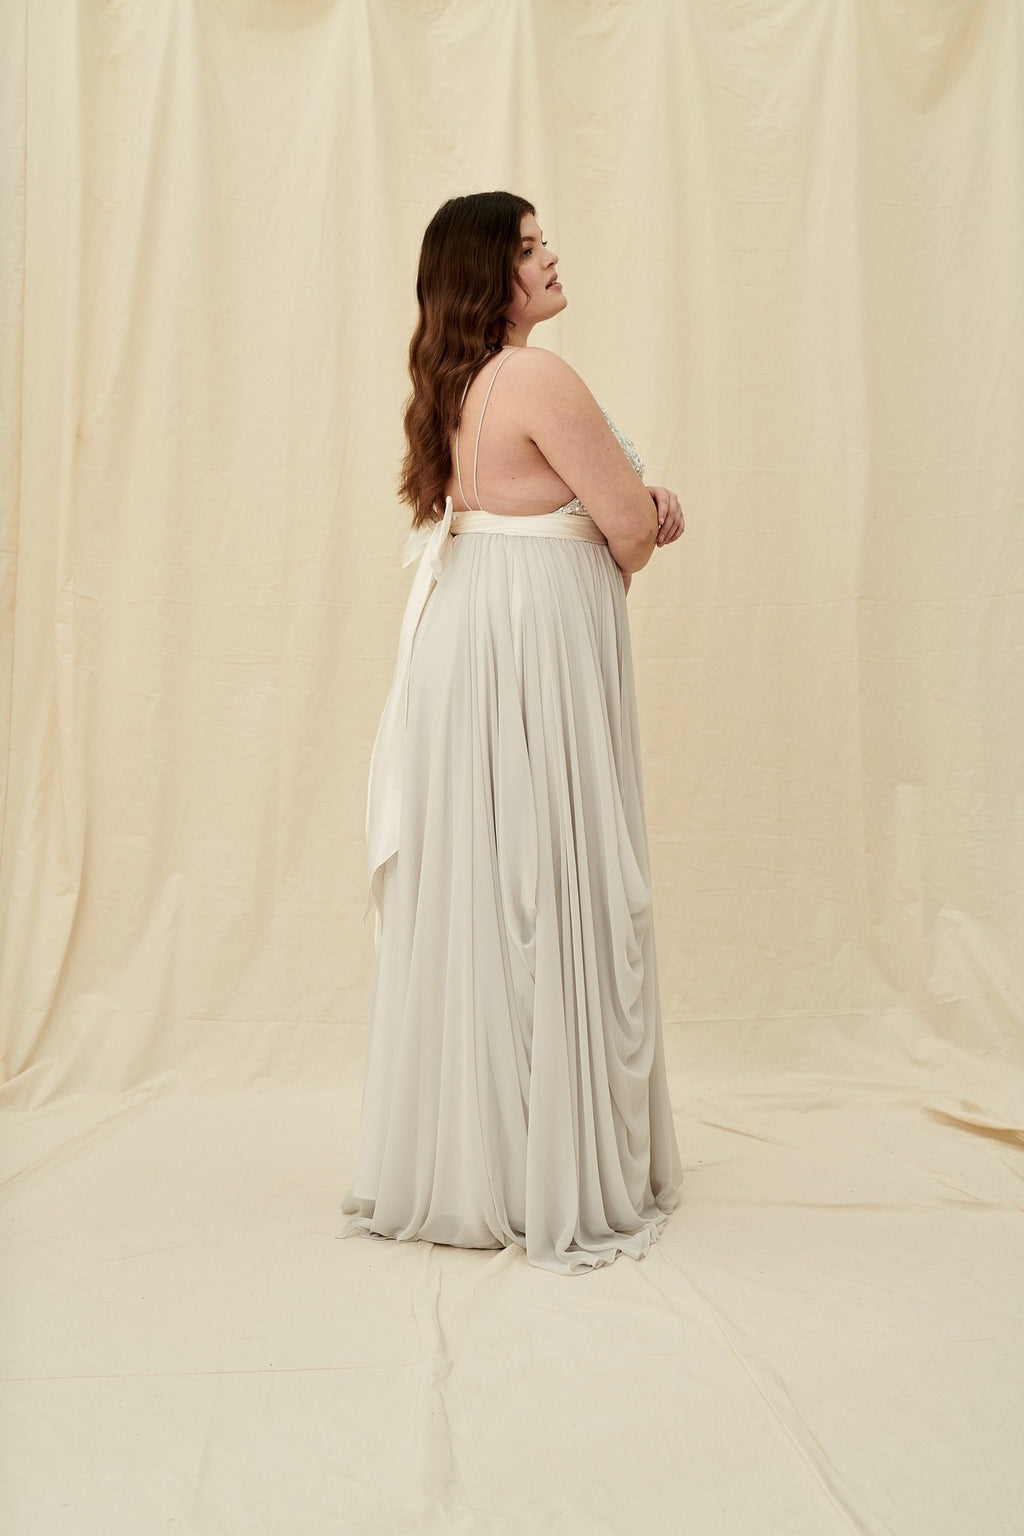 Affordable plus size wedding dresses in Vancouver and Calgary